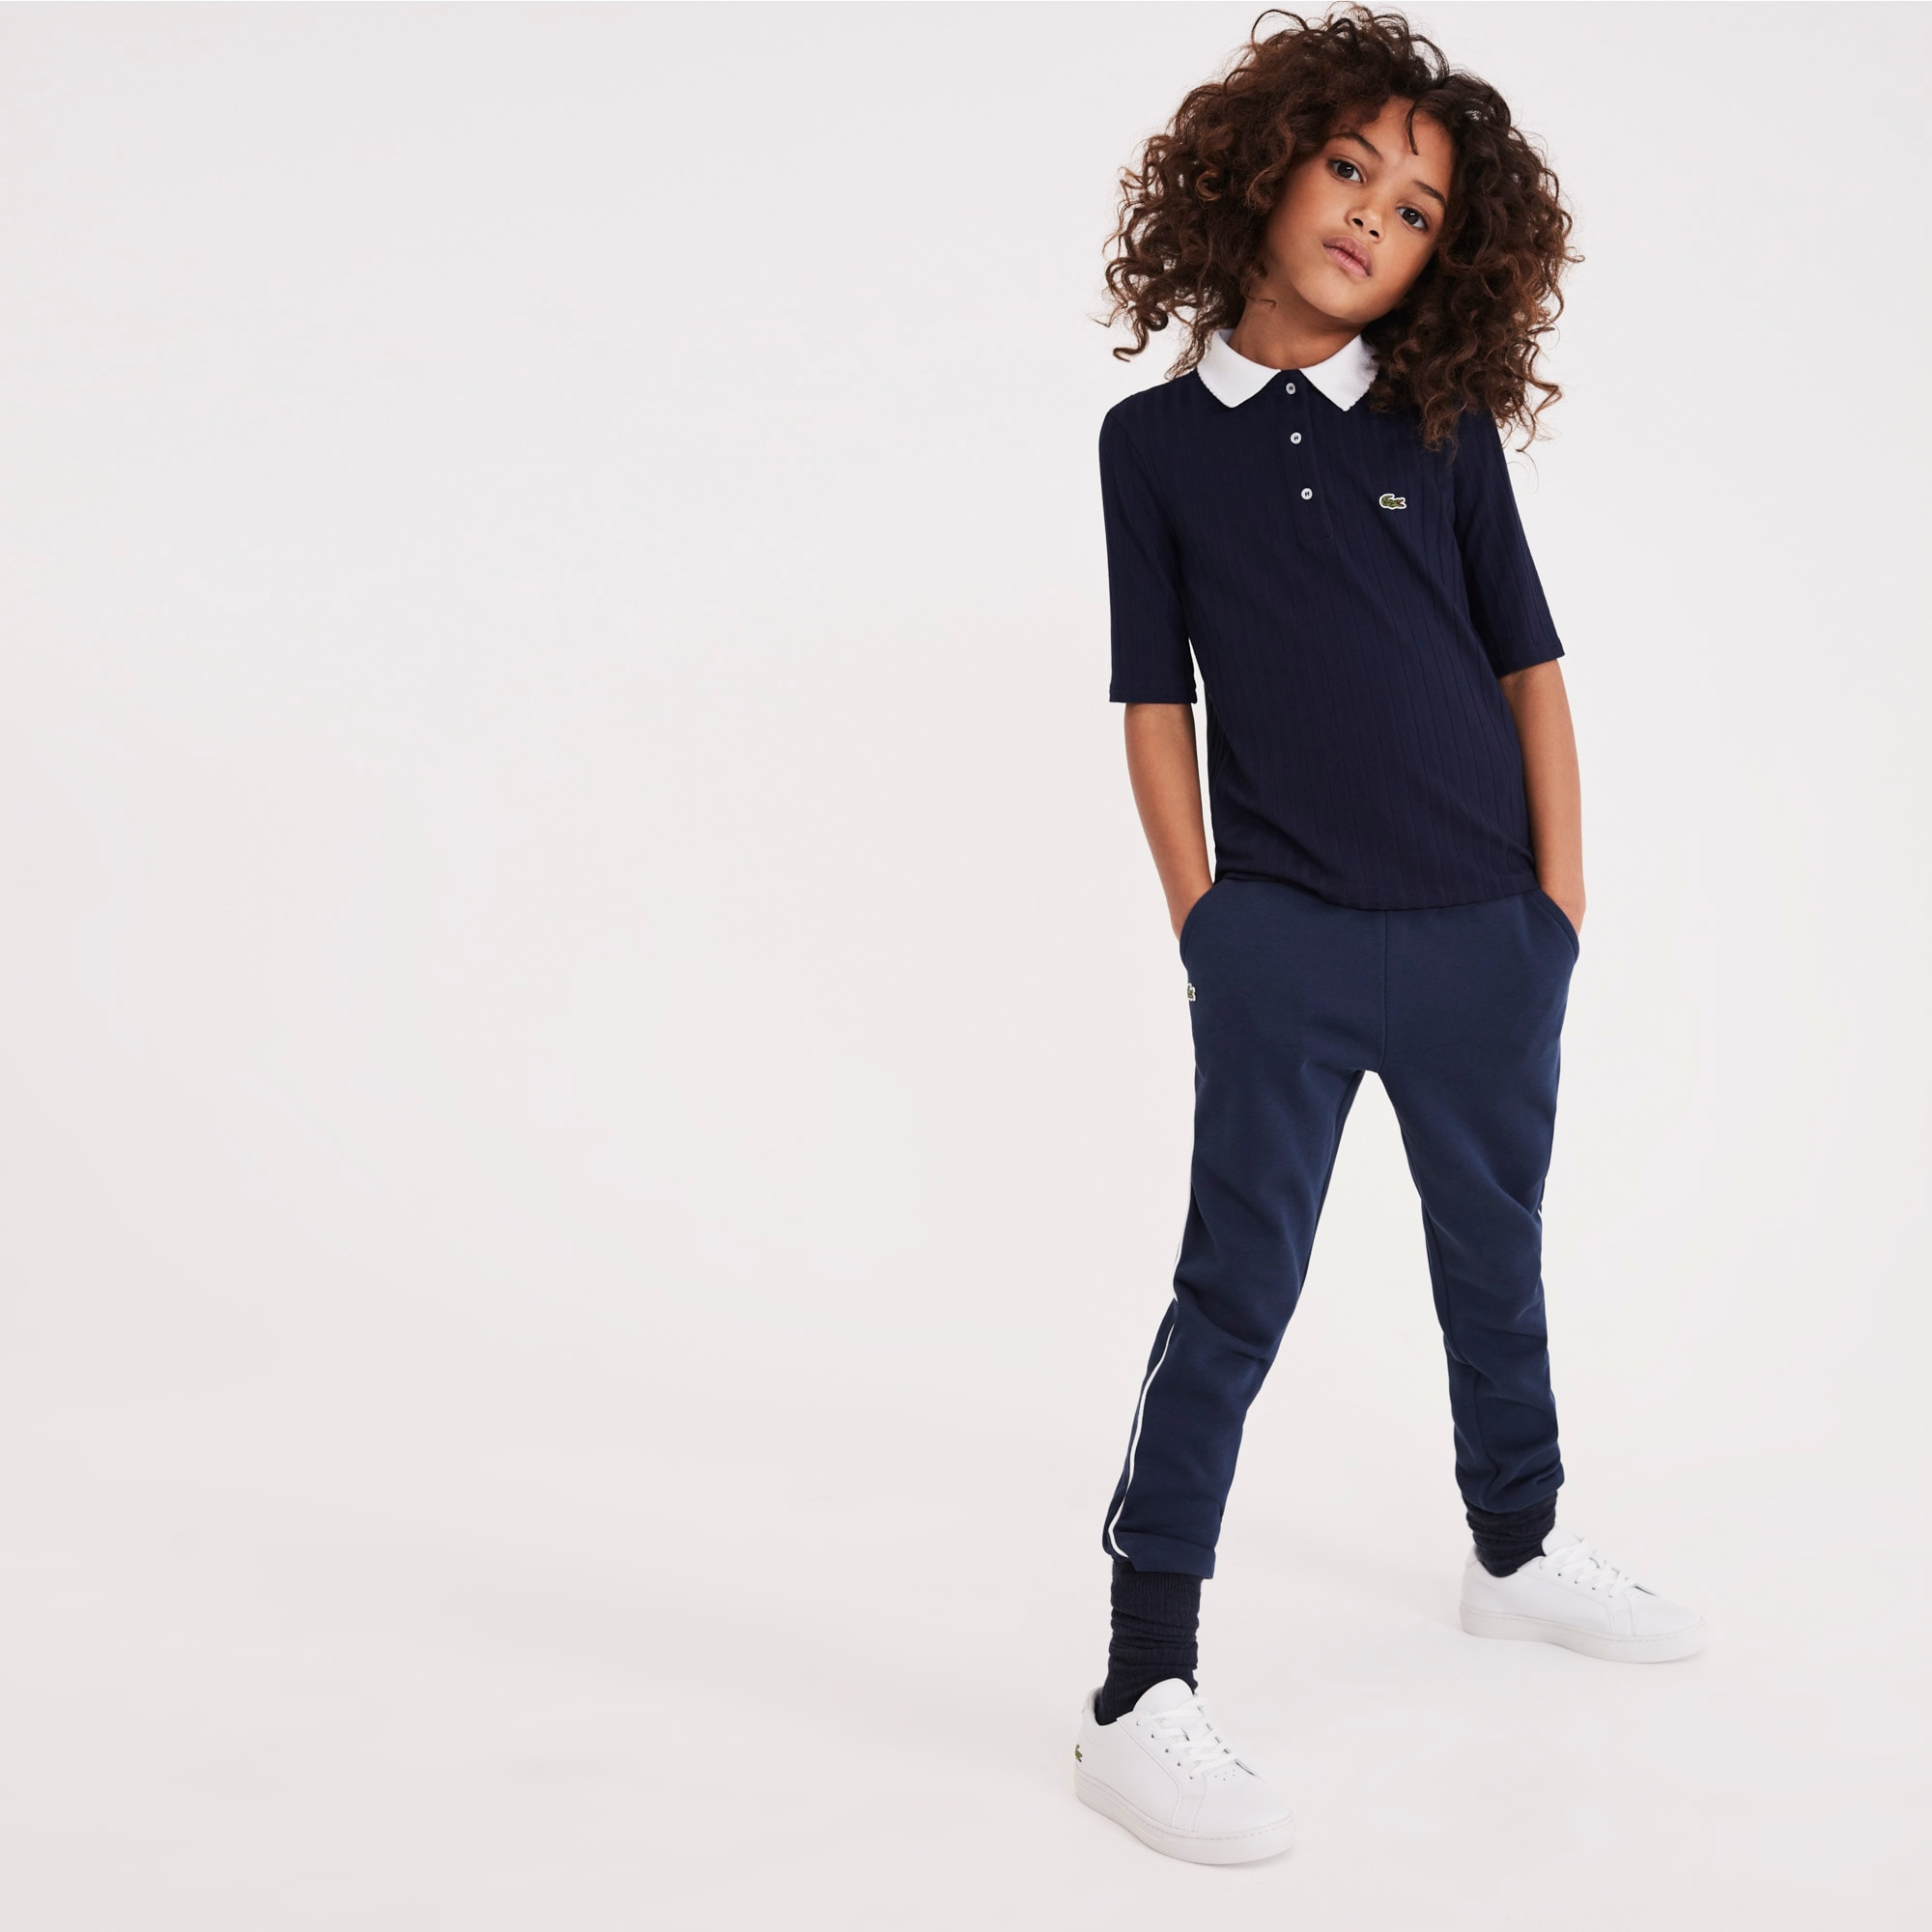 Girls' Contrast Neck Stretch Ribbed Knit Polo